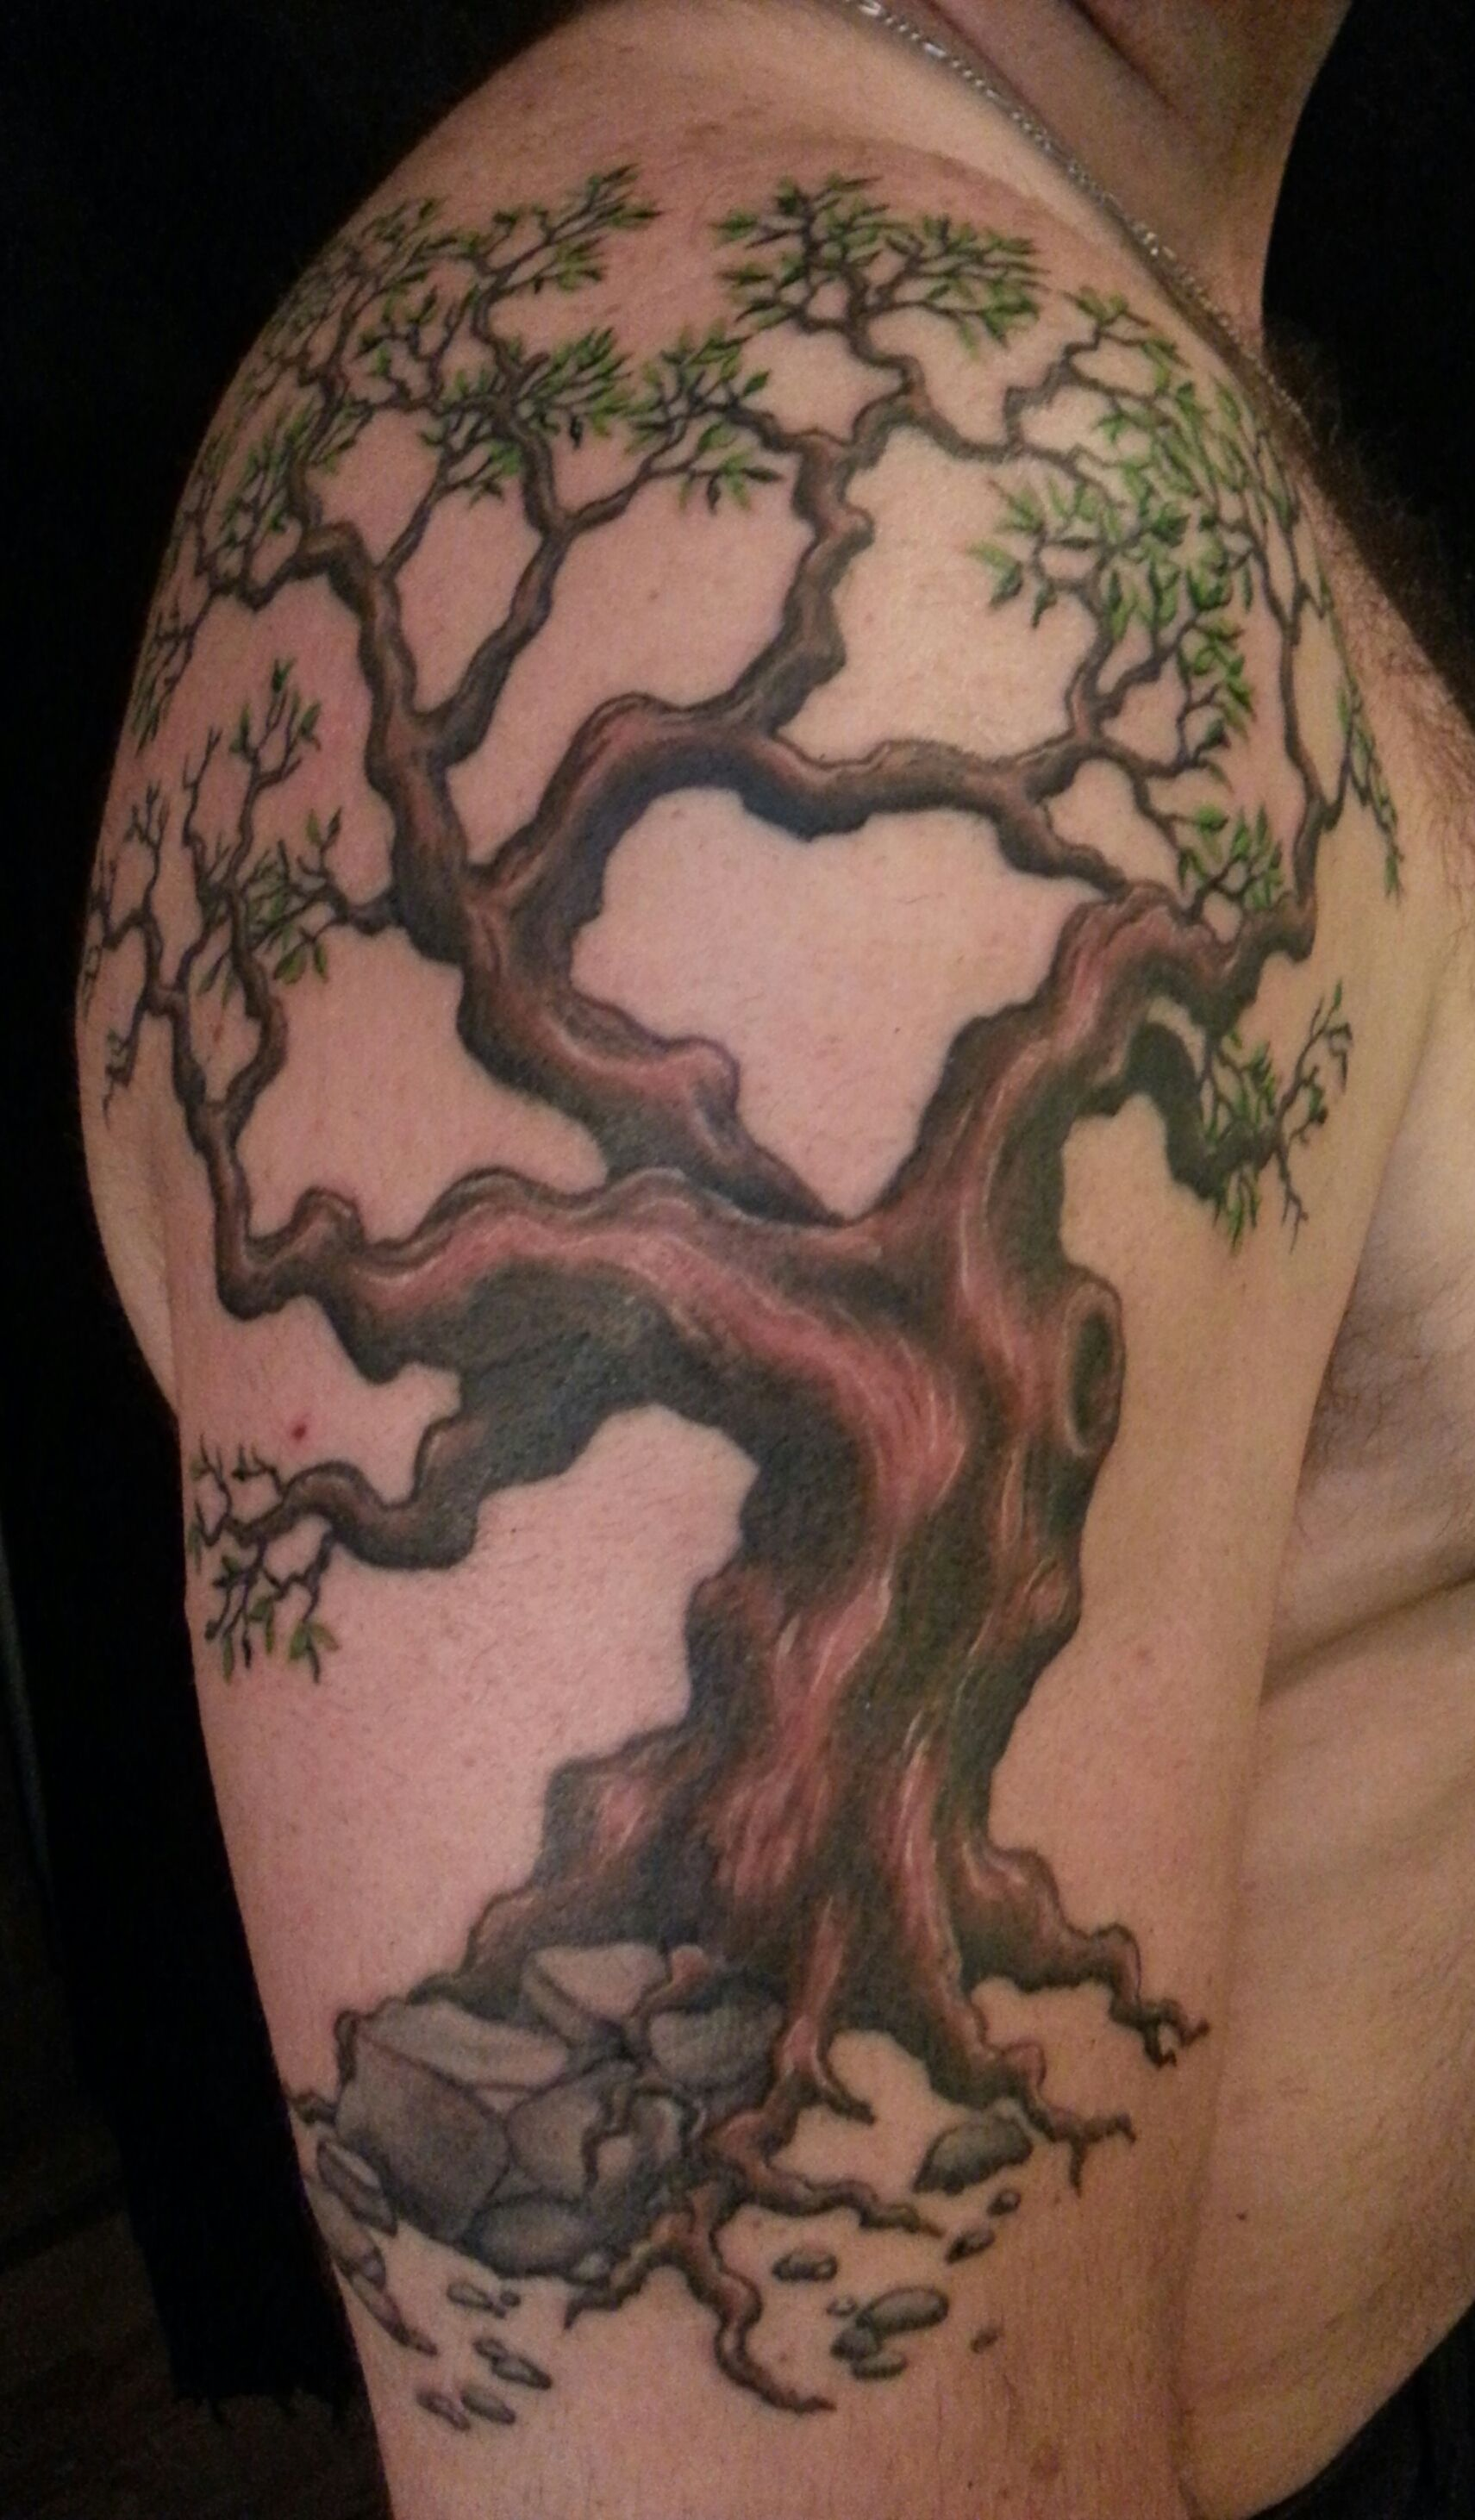 b41e1f338bac4 bodhi tree tattoo - Google Search | Tattoo ideas | Tattoos, Canada ...